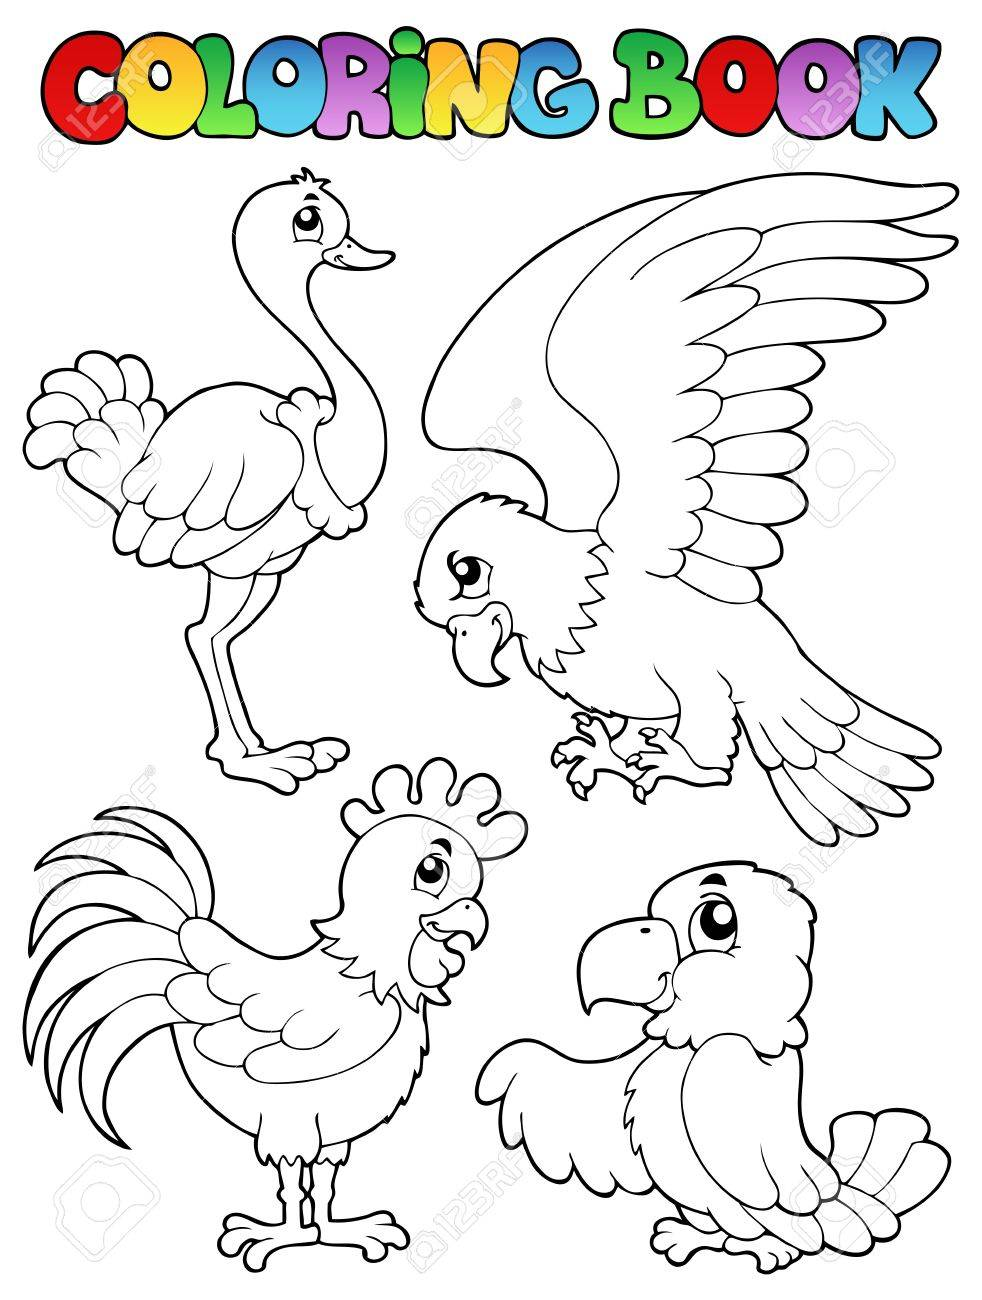 The zoology coloring book - Coloring Book Bird Image Illustration Stock Vector 16906777